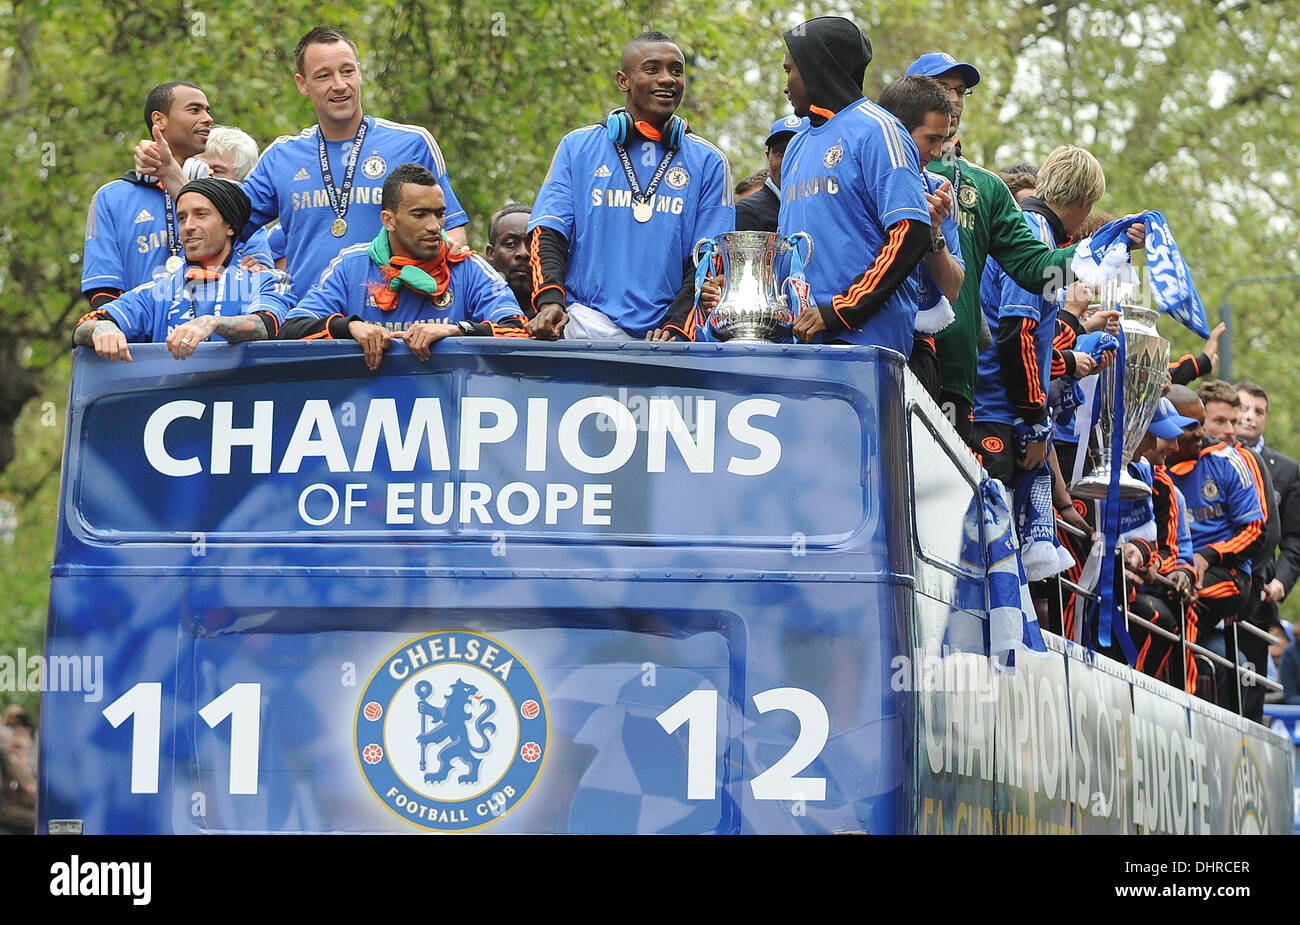 Chelsea FC European Champions League Victory Parade